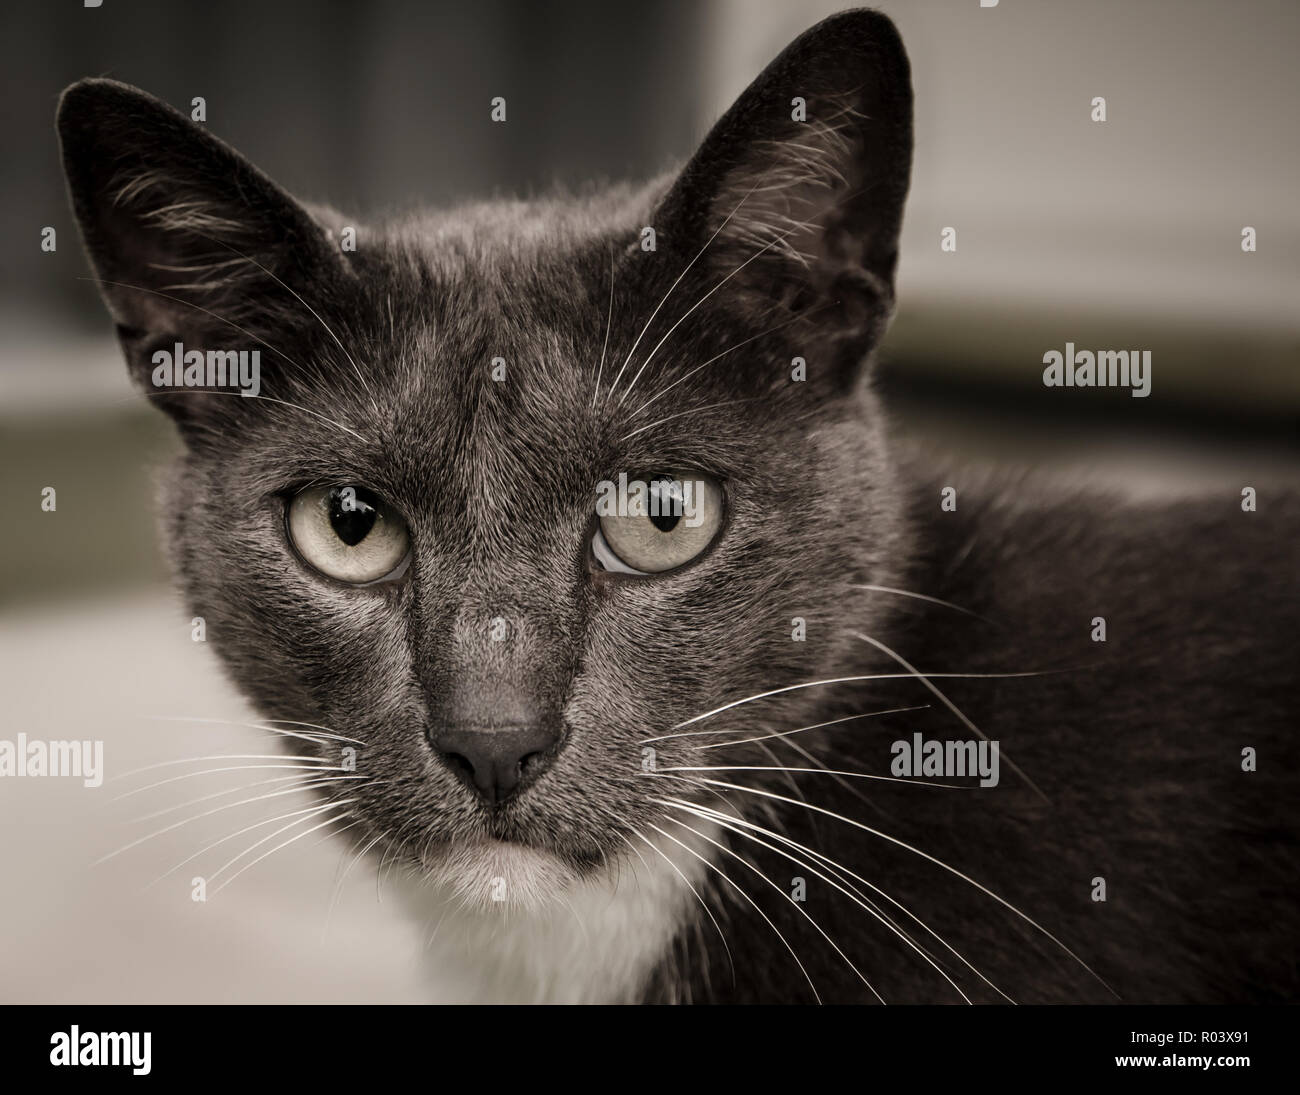 Sissy, a gray, domestic short-haired cat, enjoys an afternoon outside on the front porch. - Stock Image